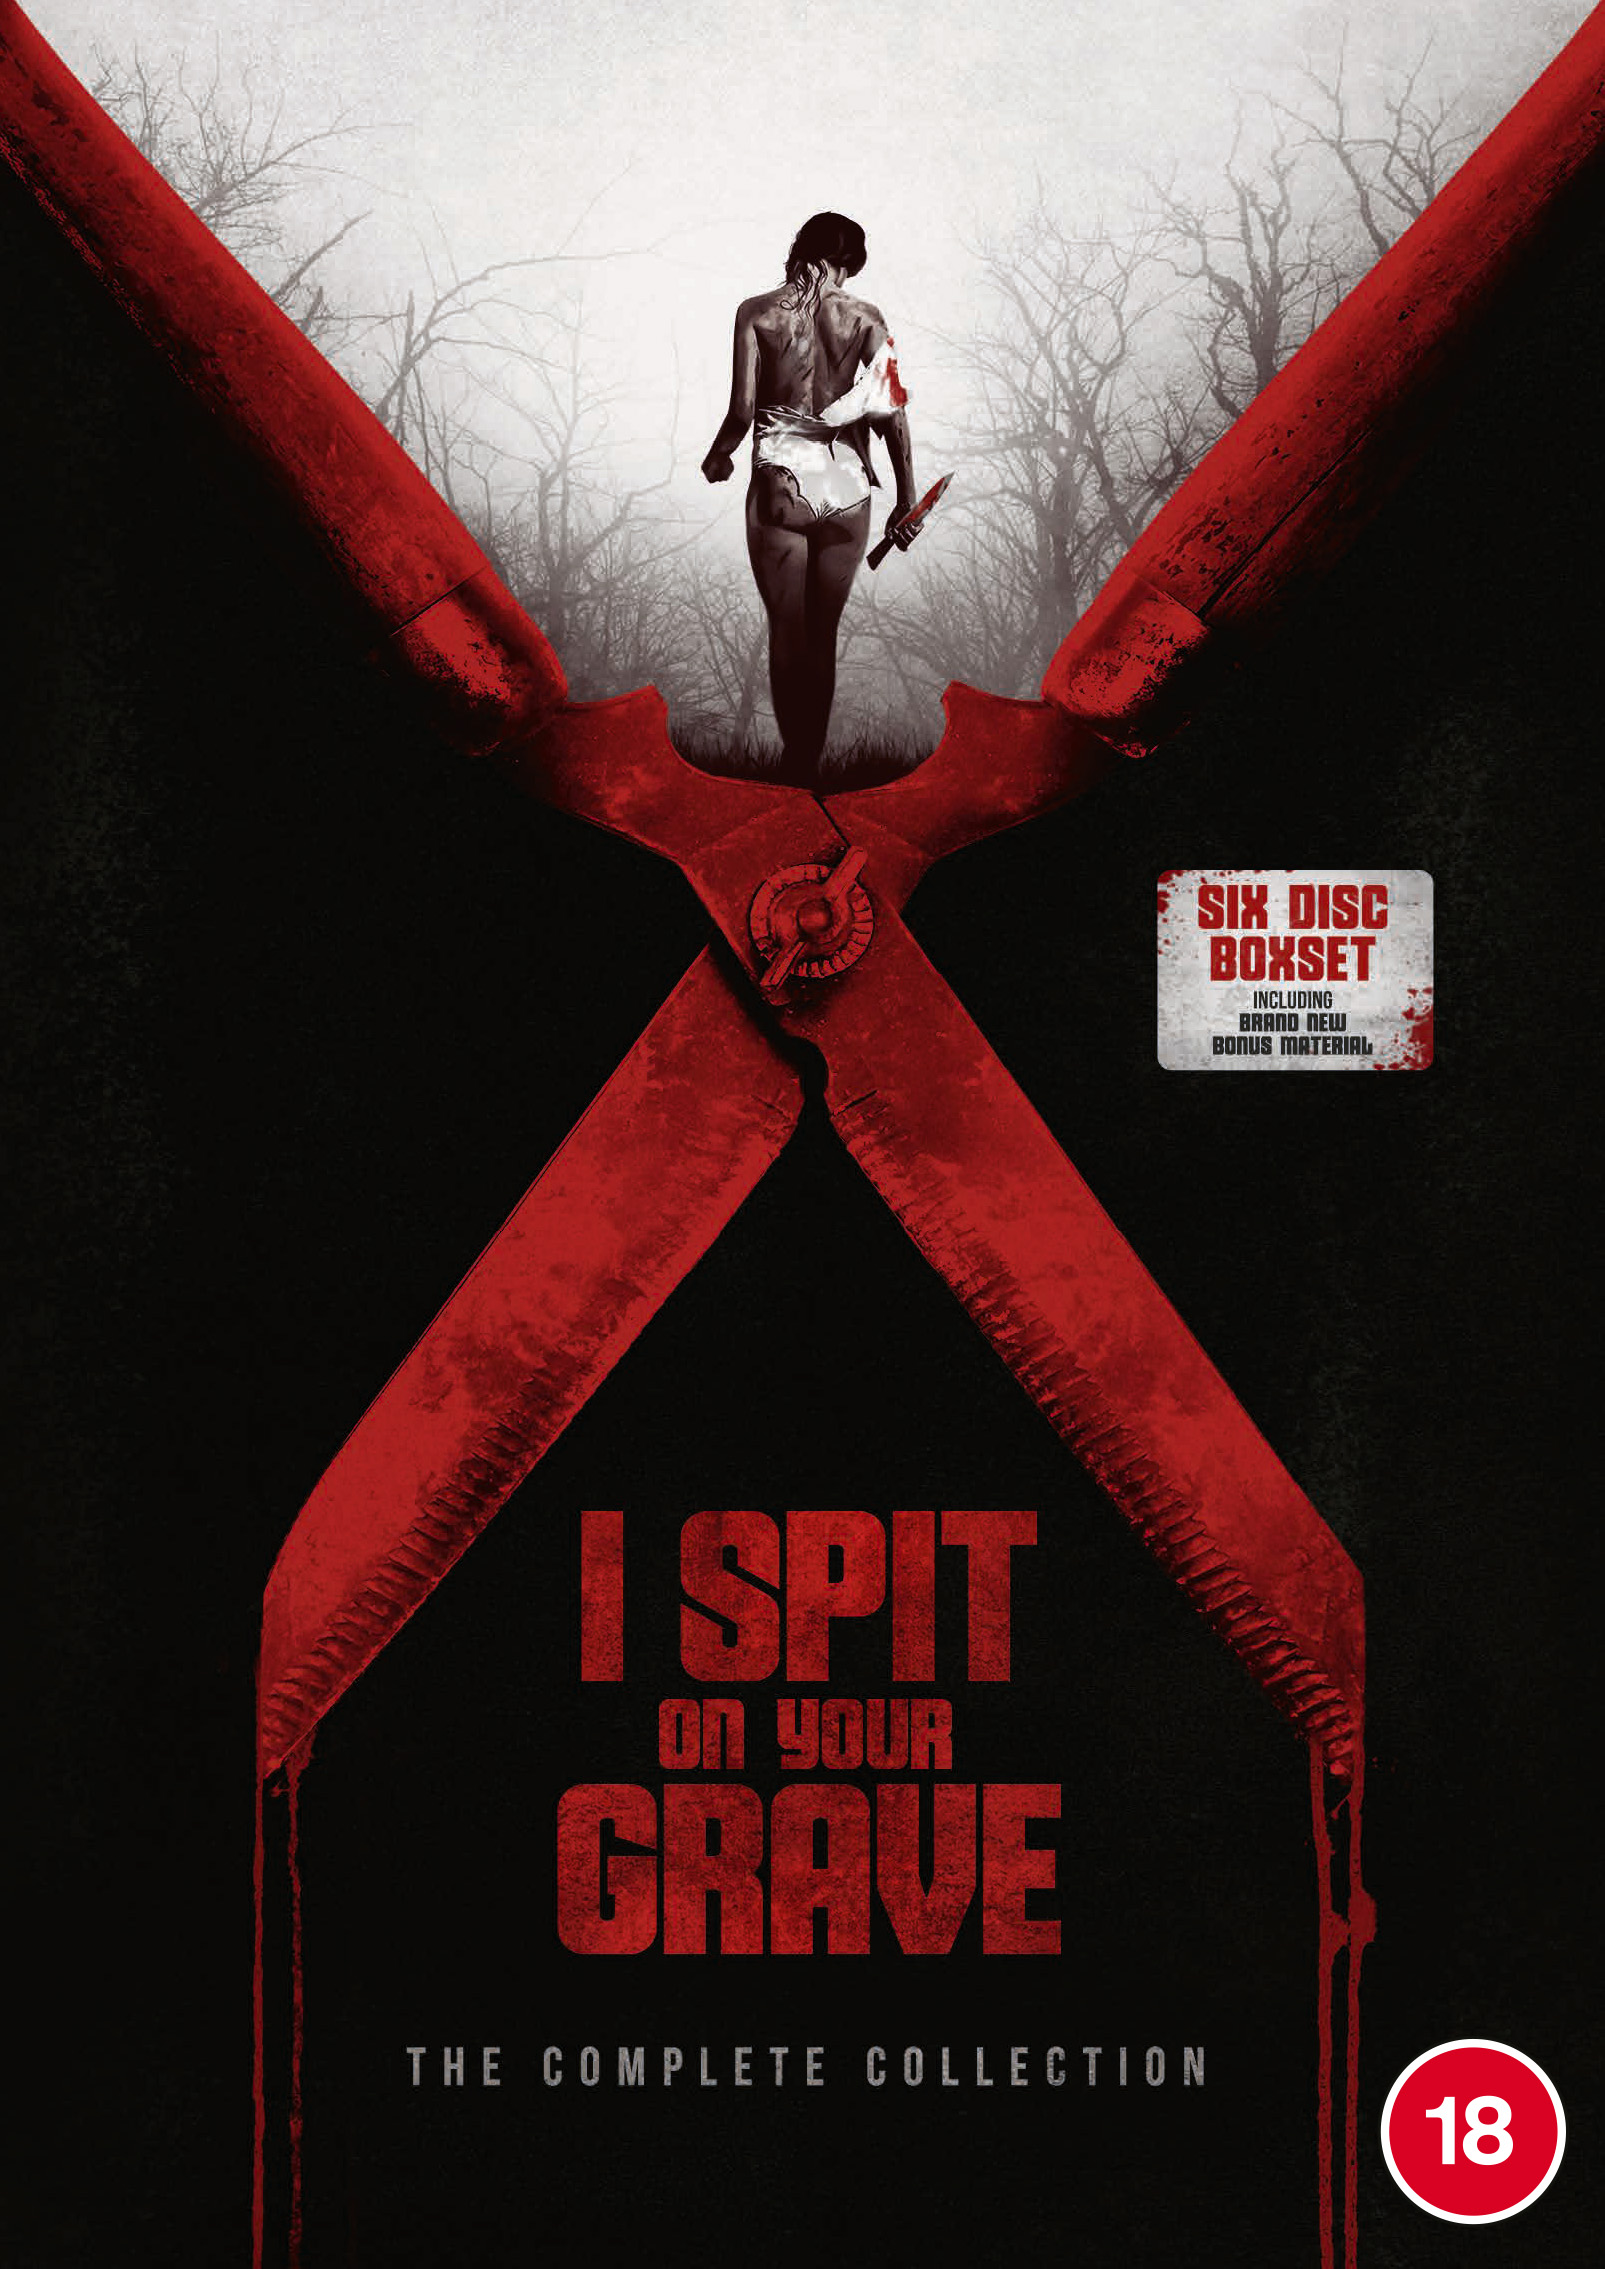 Kaleidoscope Home Entertainment Proudly Presents the Legendary I SPIT ON YOUR GRAVE: THE COMPLETE COLLECTION on Blu-ray & DVD (UK / 5 October)